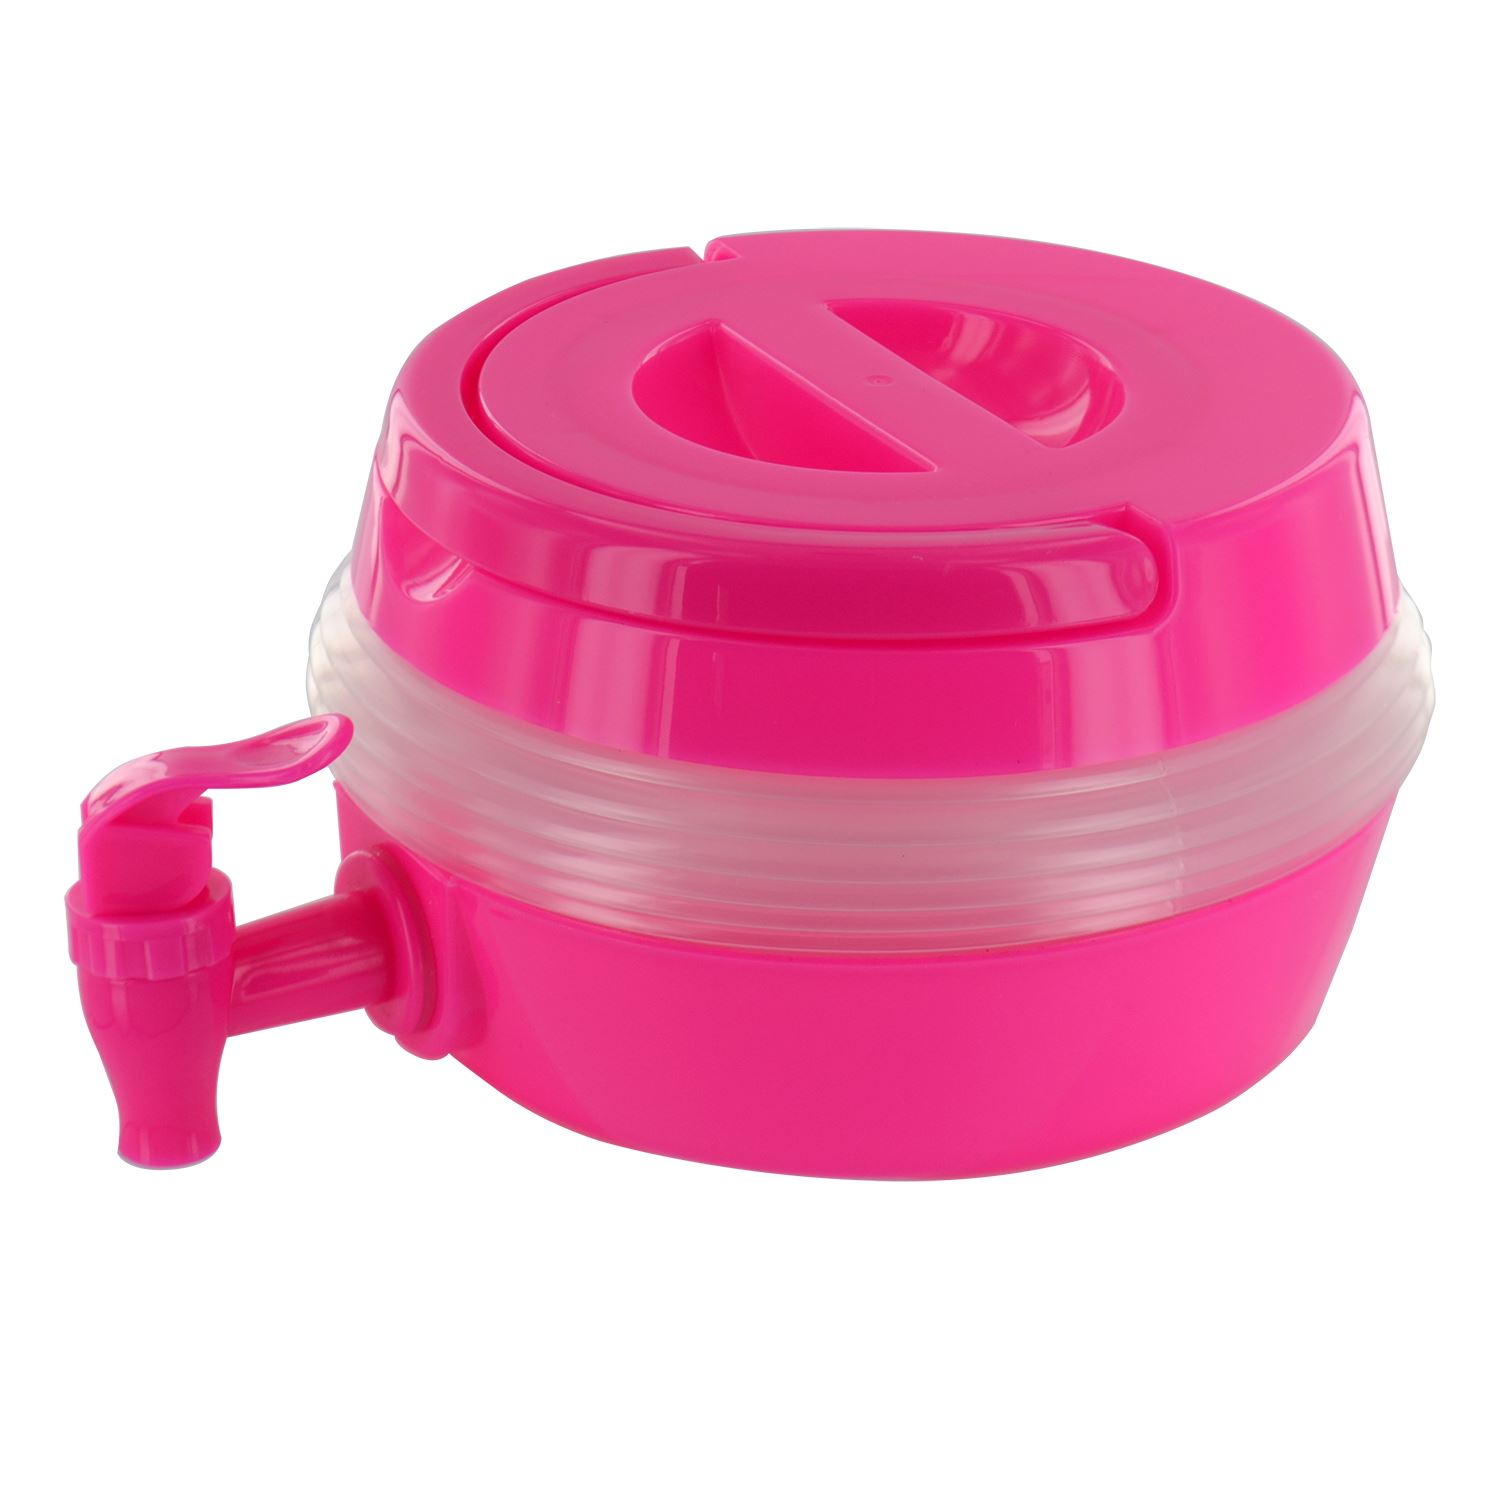 Collapsible Folding Water Dispenser Portable Drinks Container Camping With Tap